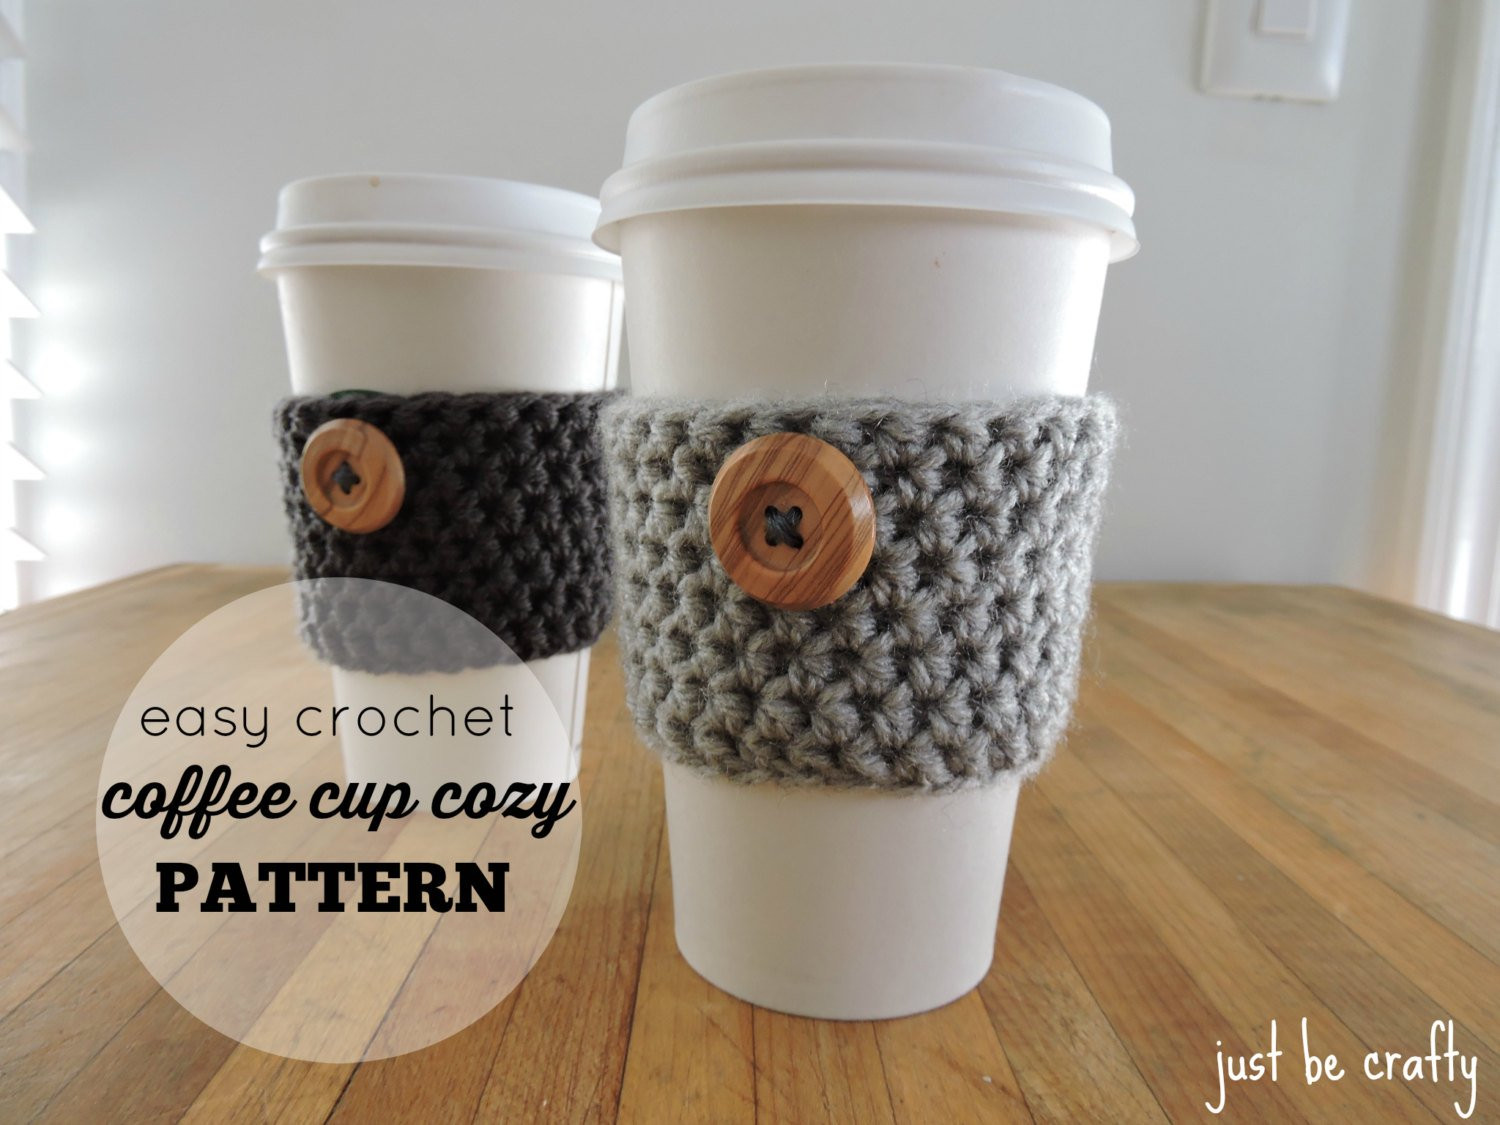 Crochet Coffee Cup Cozy Inspirational Crochet Coffee Cup Cozy Pattern Pdf Download Coffee Cup Cozy Of Crochet Coffee Cup Cozy Awesome Textured Coffee Mug Cozy Crochet Pattern